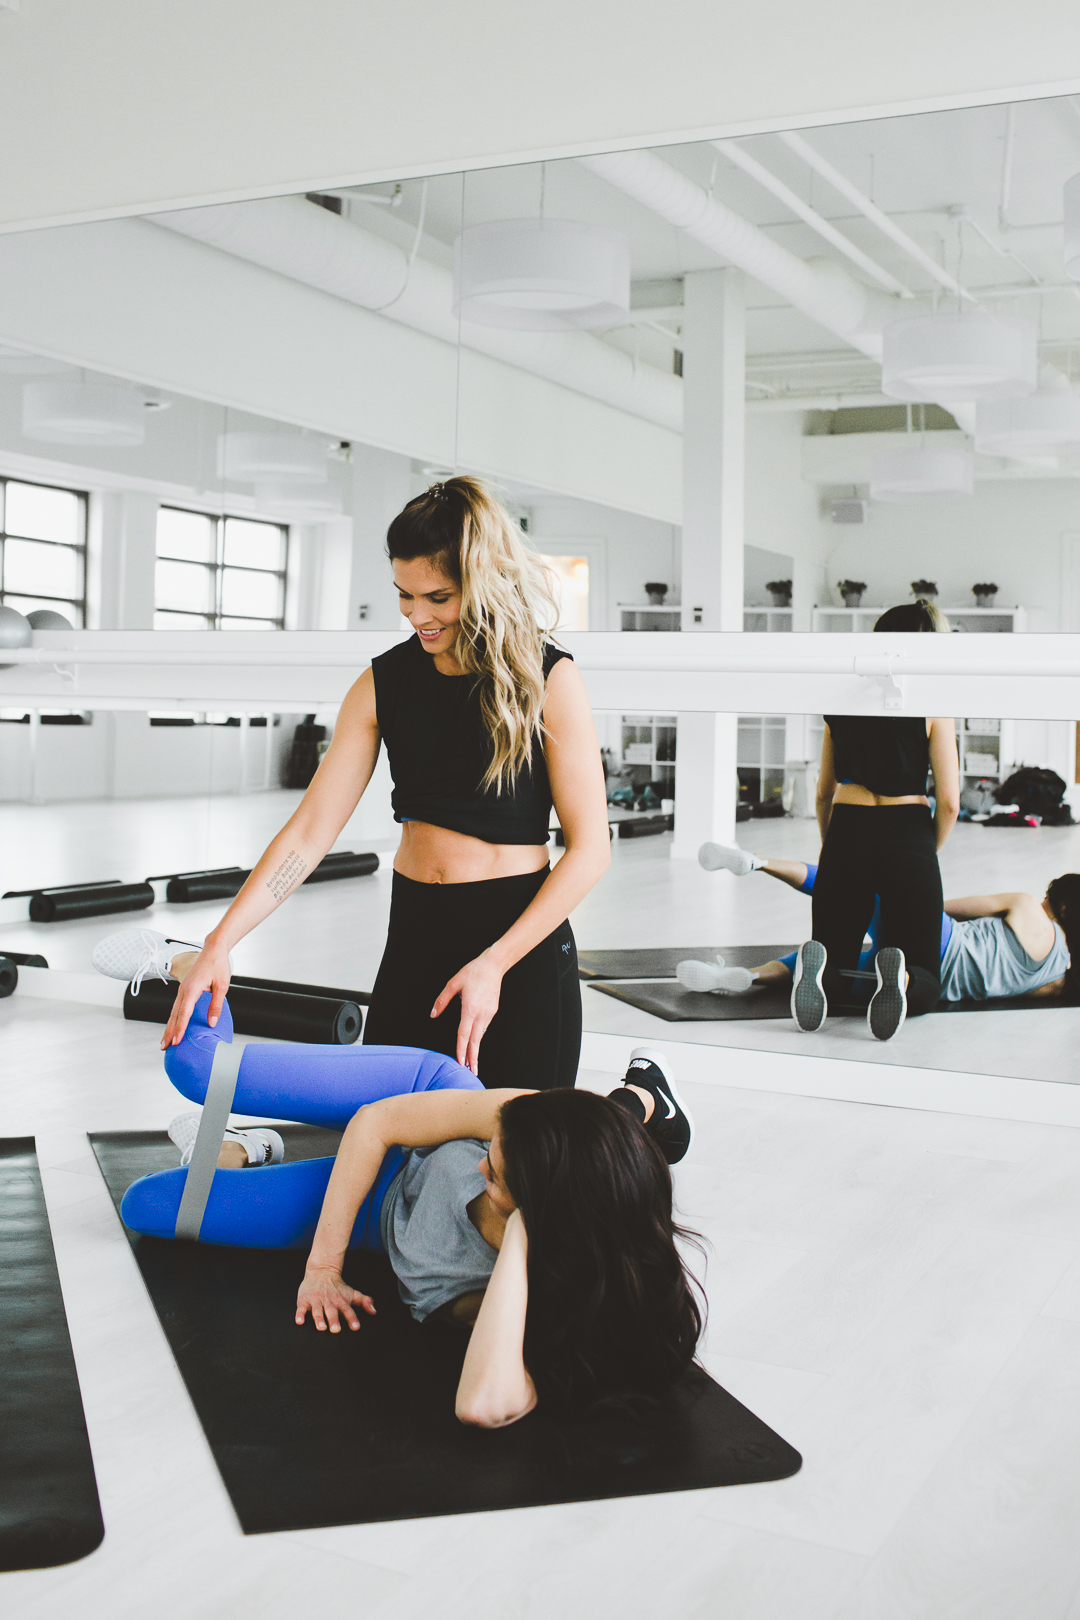 Exercises to tone the butt